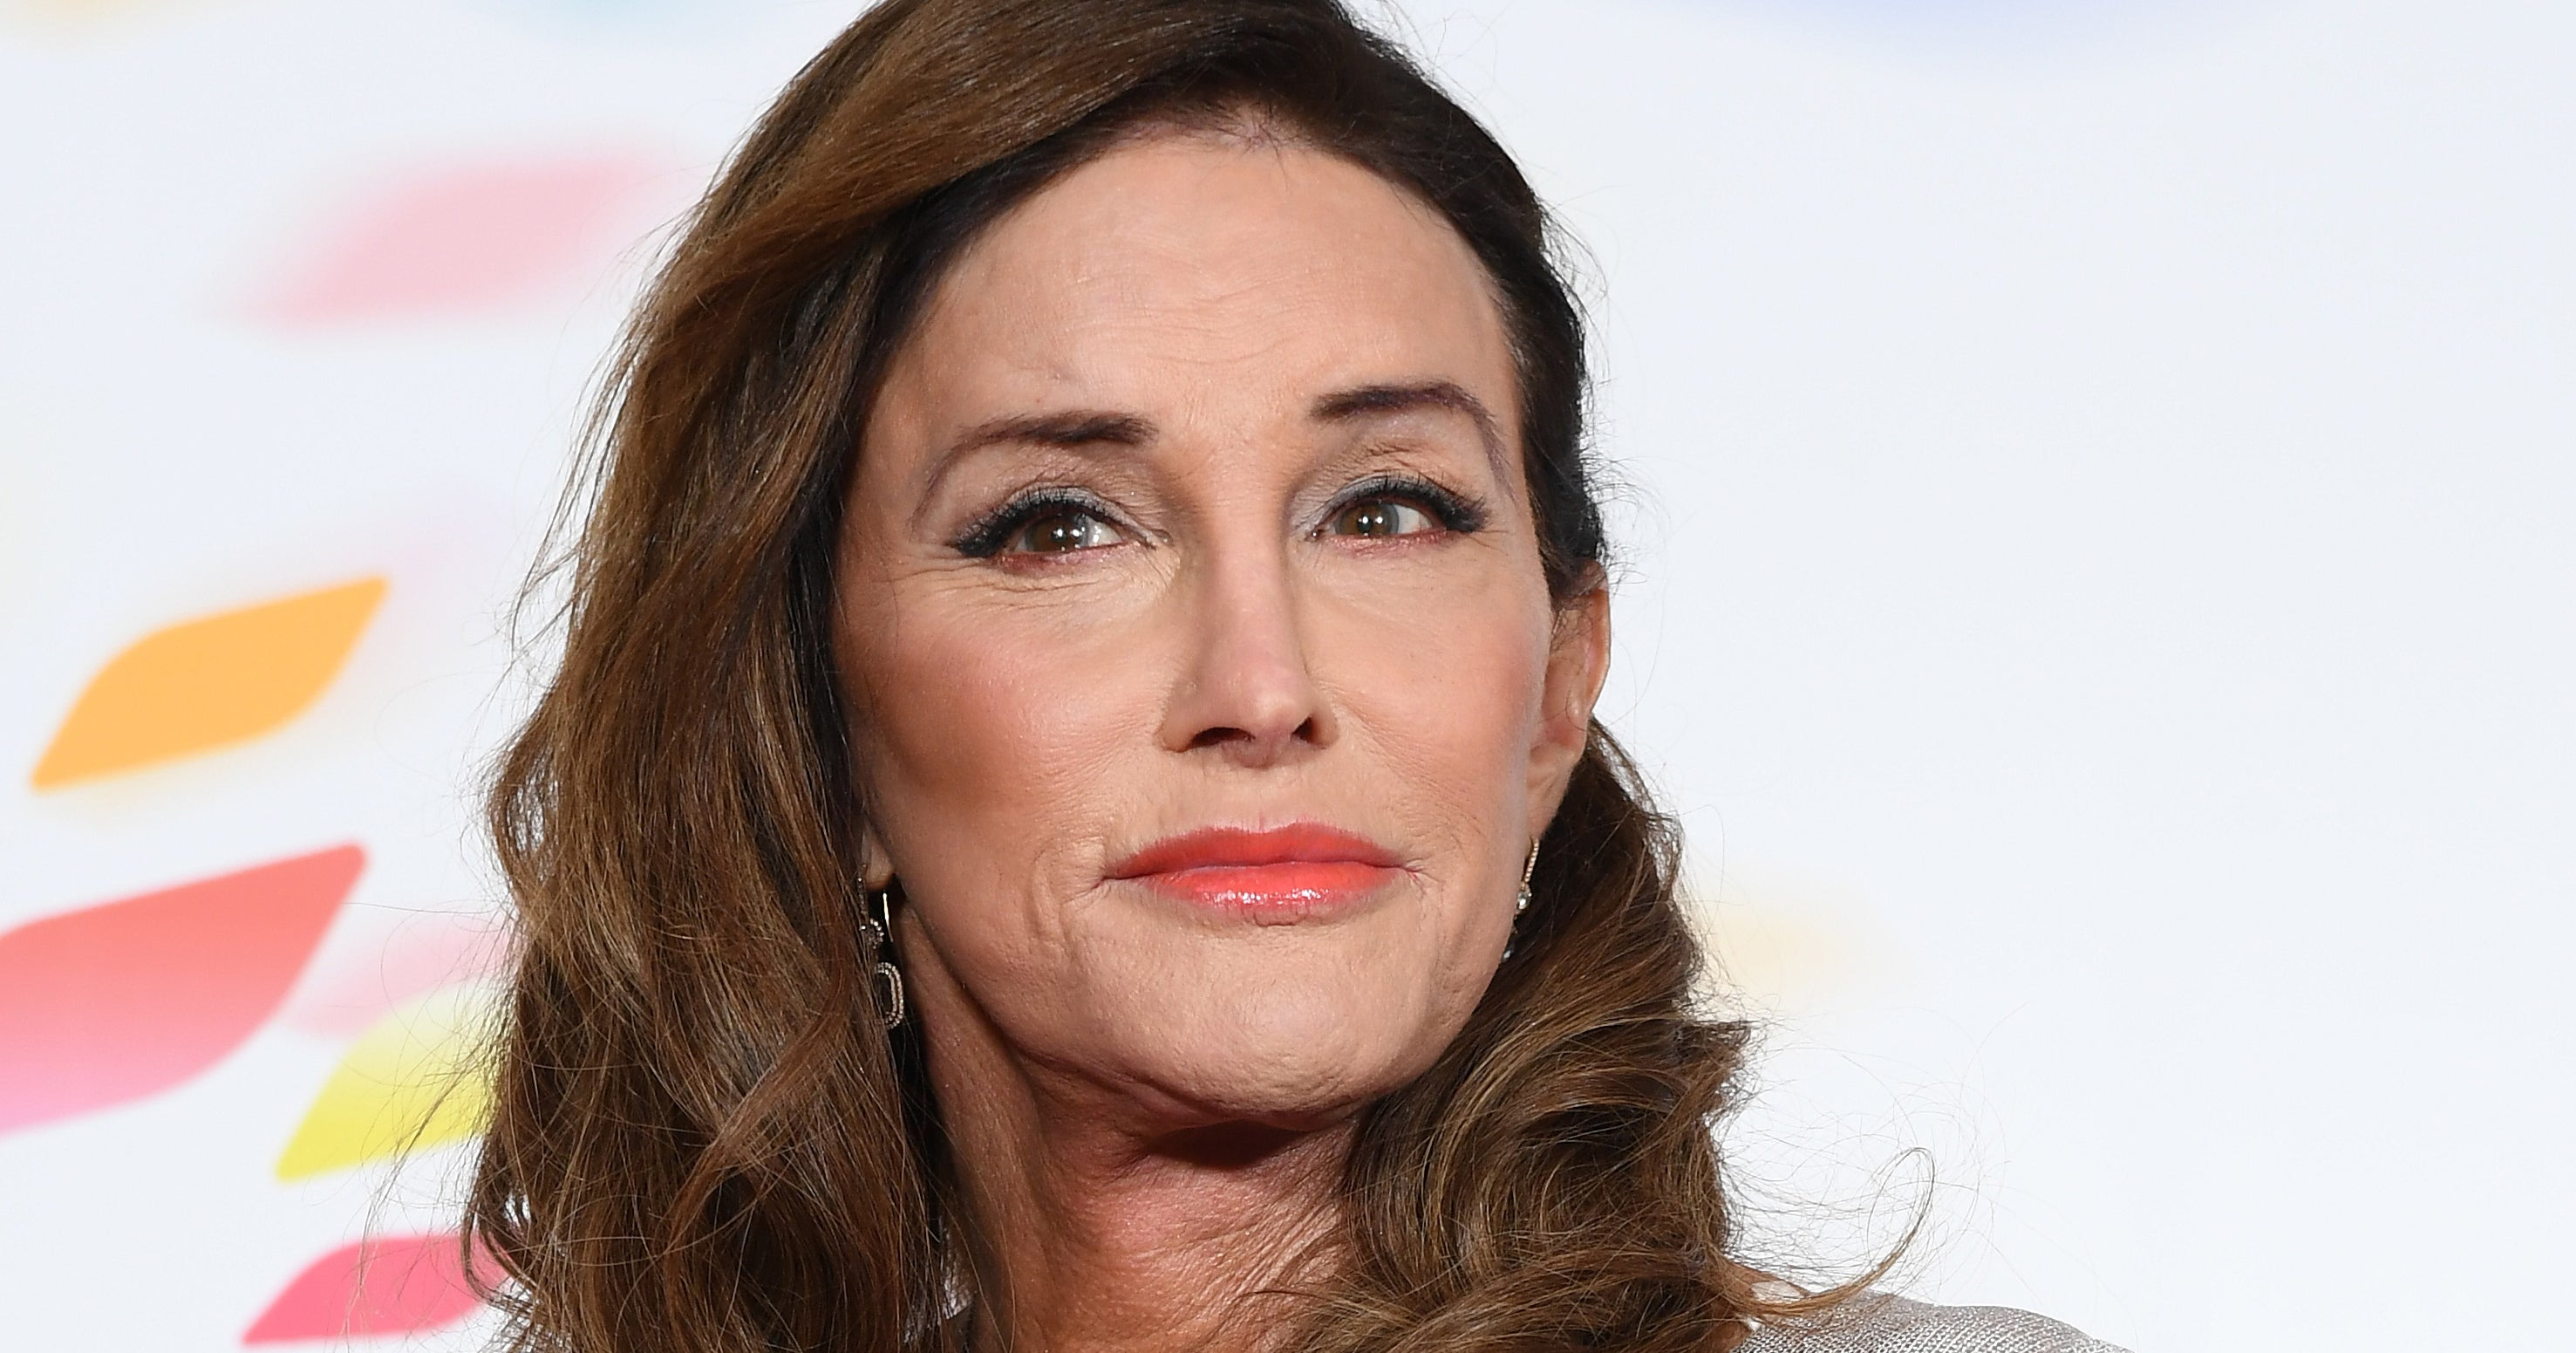 Apparently, Caitlyn Jenner Is Taking Her Leadership Cues From Donald Trump